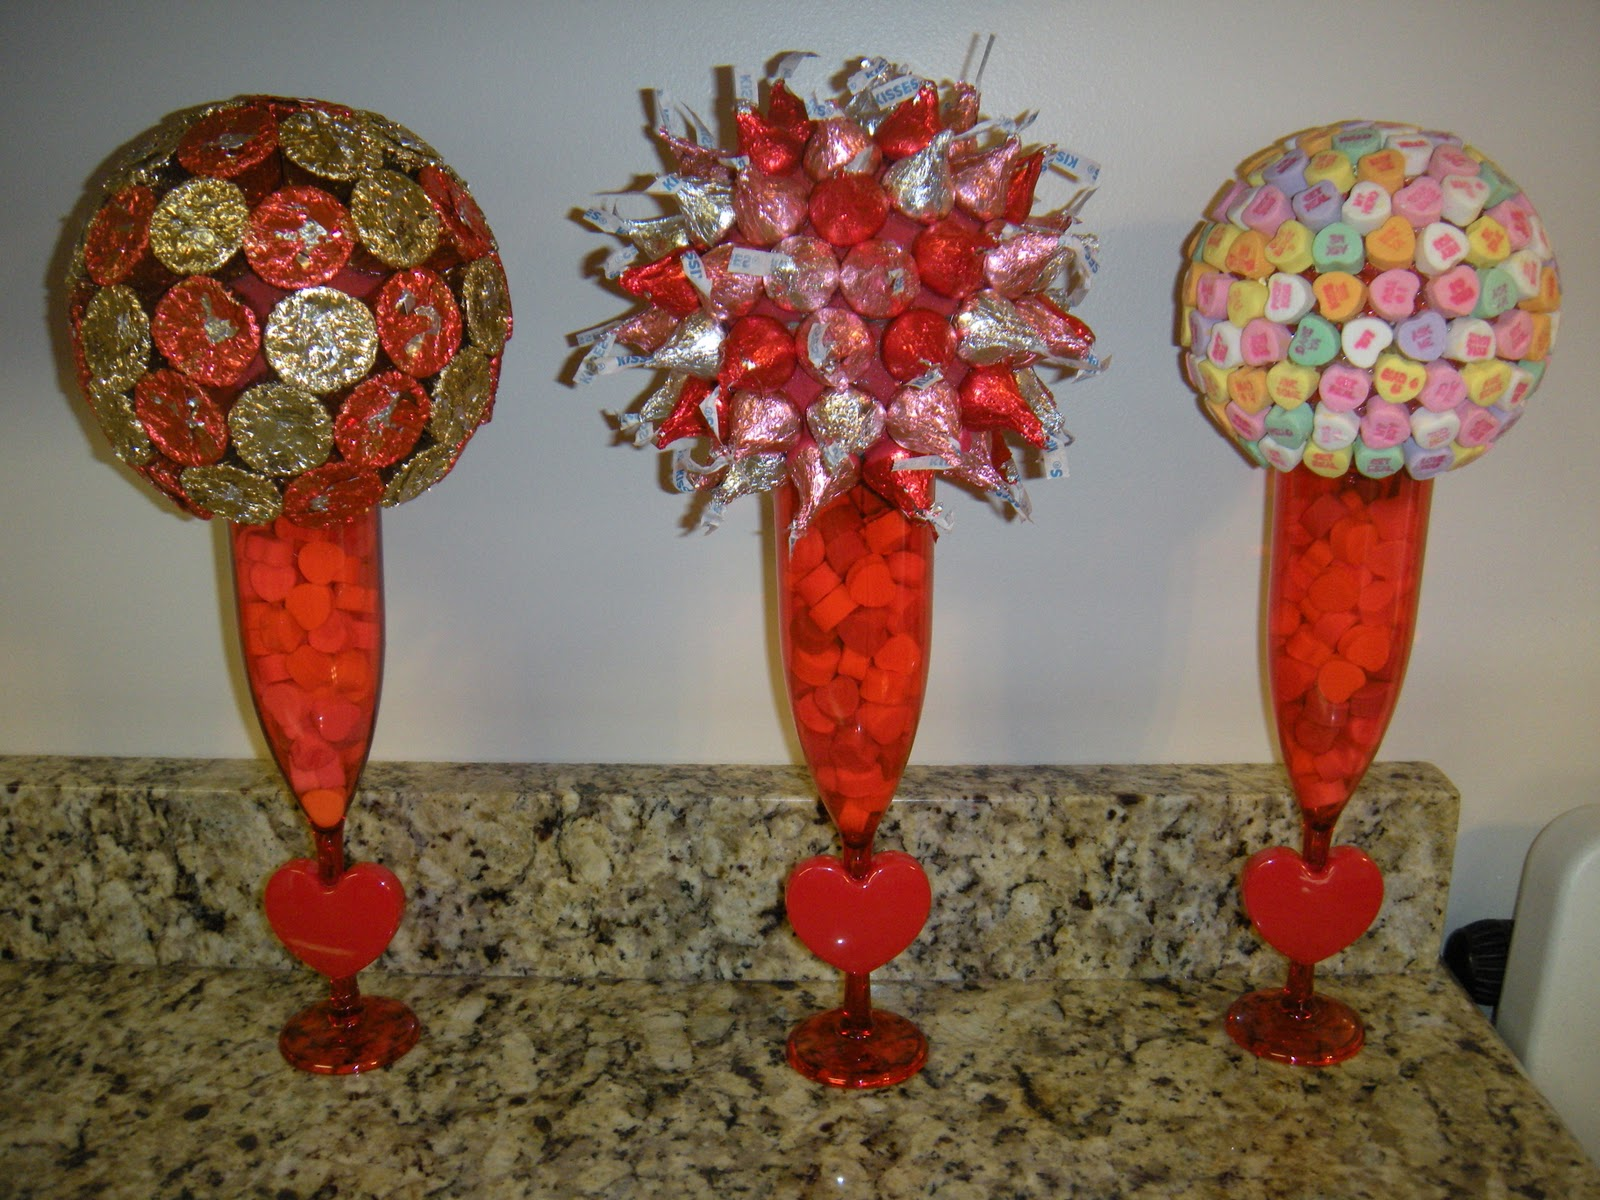 Table decoration ideas for valentines day - Valentines Day Table Decoration Ideas 1600x1200 Valentine Ideas Day Table Decoration Valentines 400x300